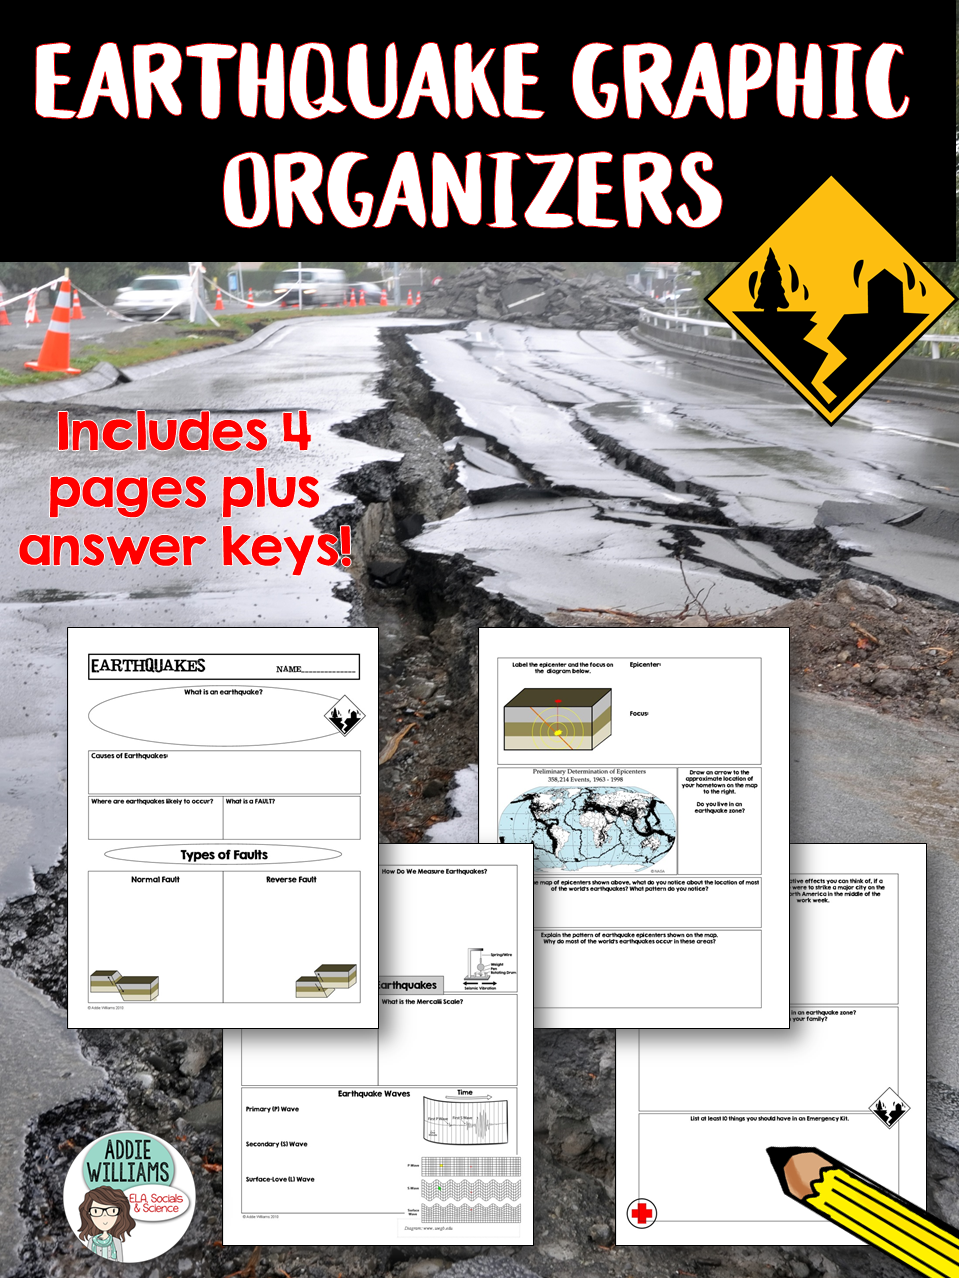 Worksheets Graphic Organizer For The Topic Faults earthquake graphic organizers covers types of faults waves measuring earthquakes focus